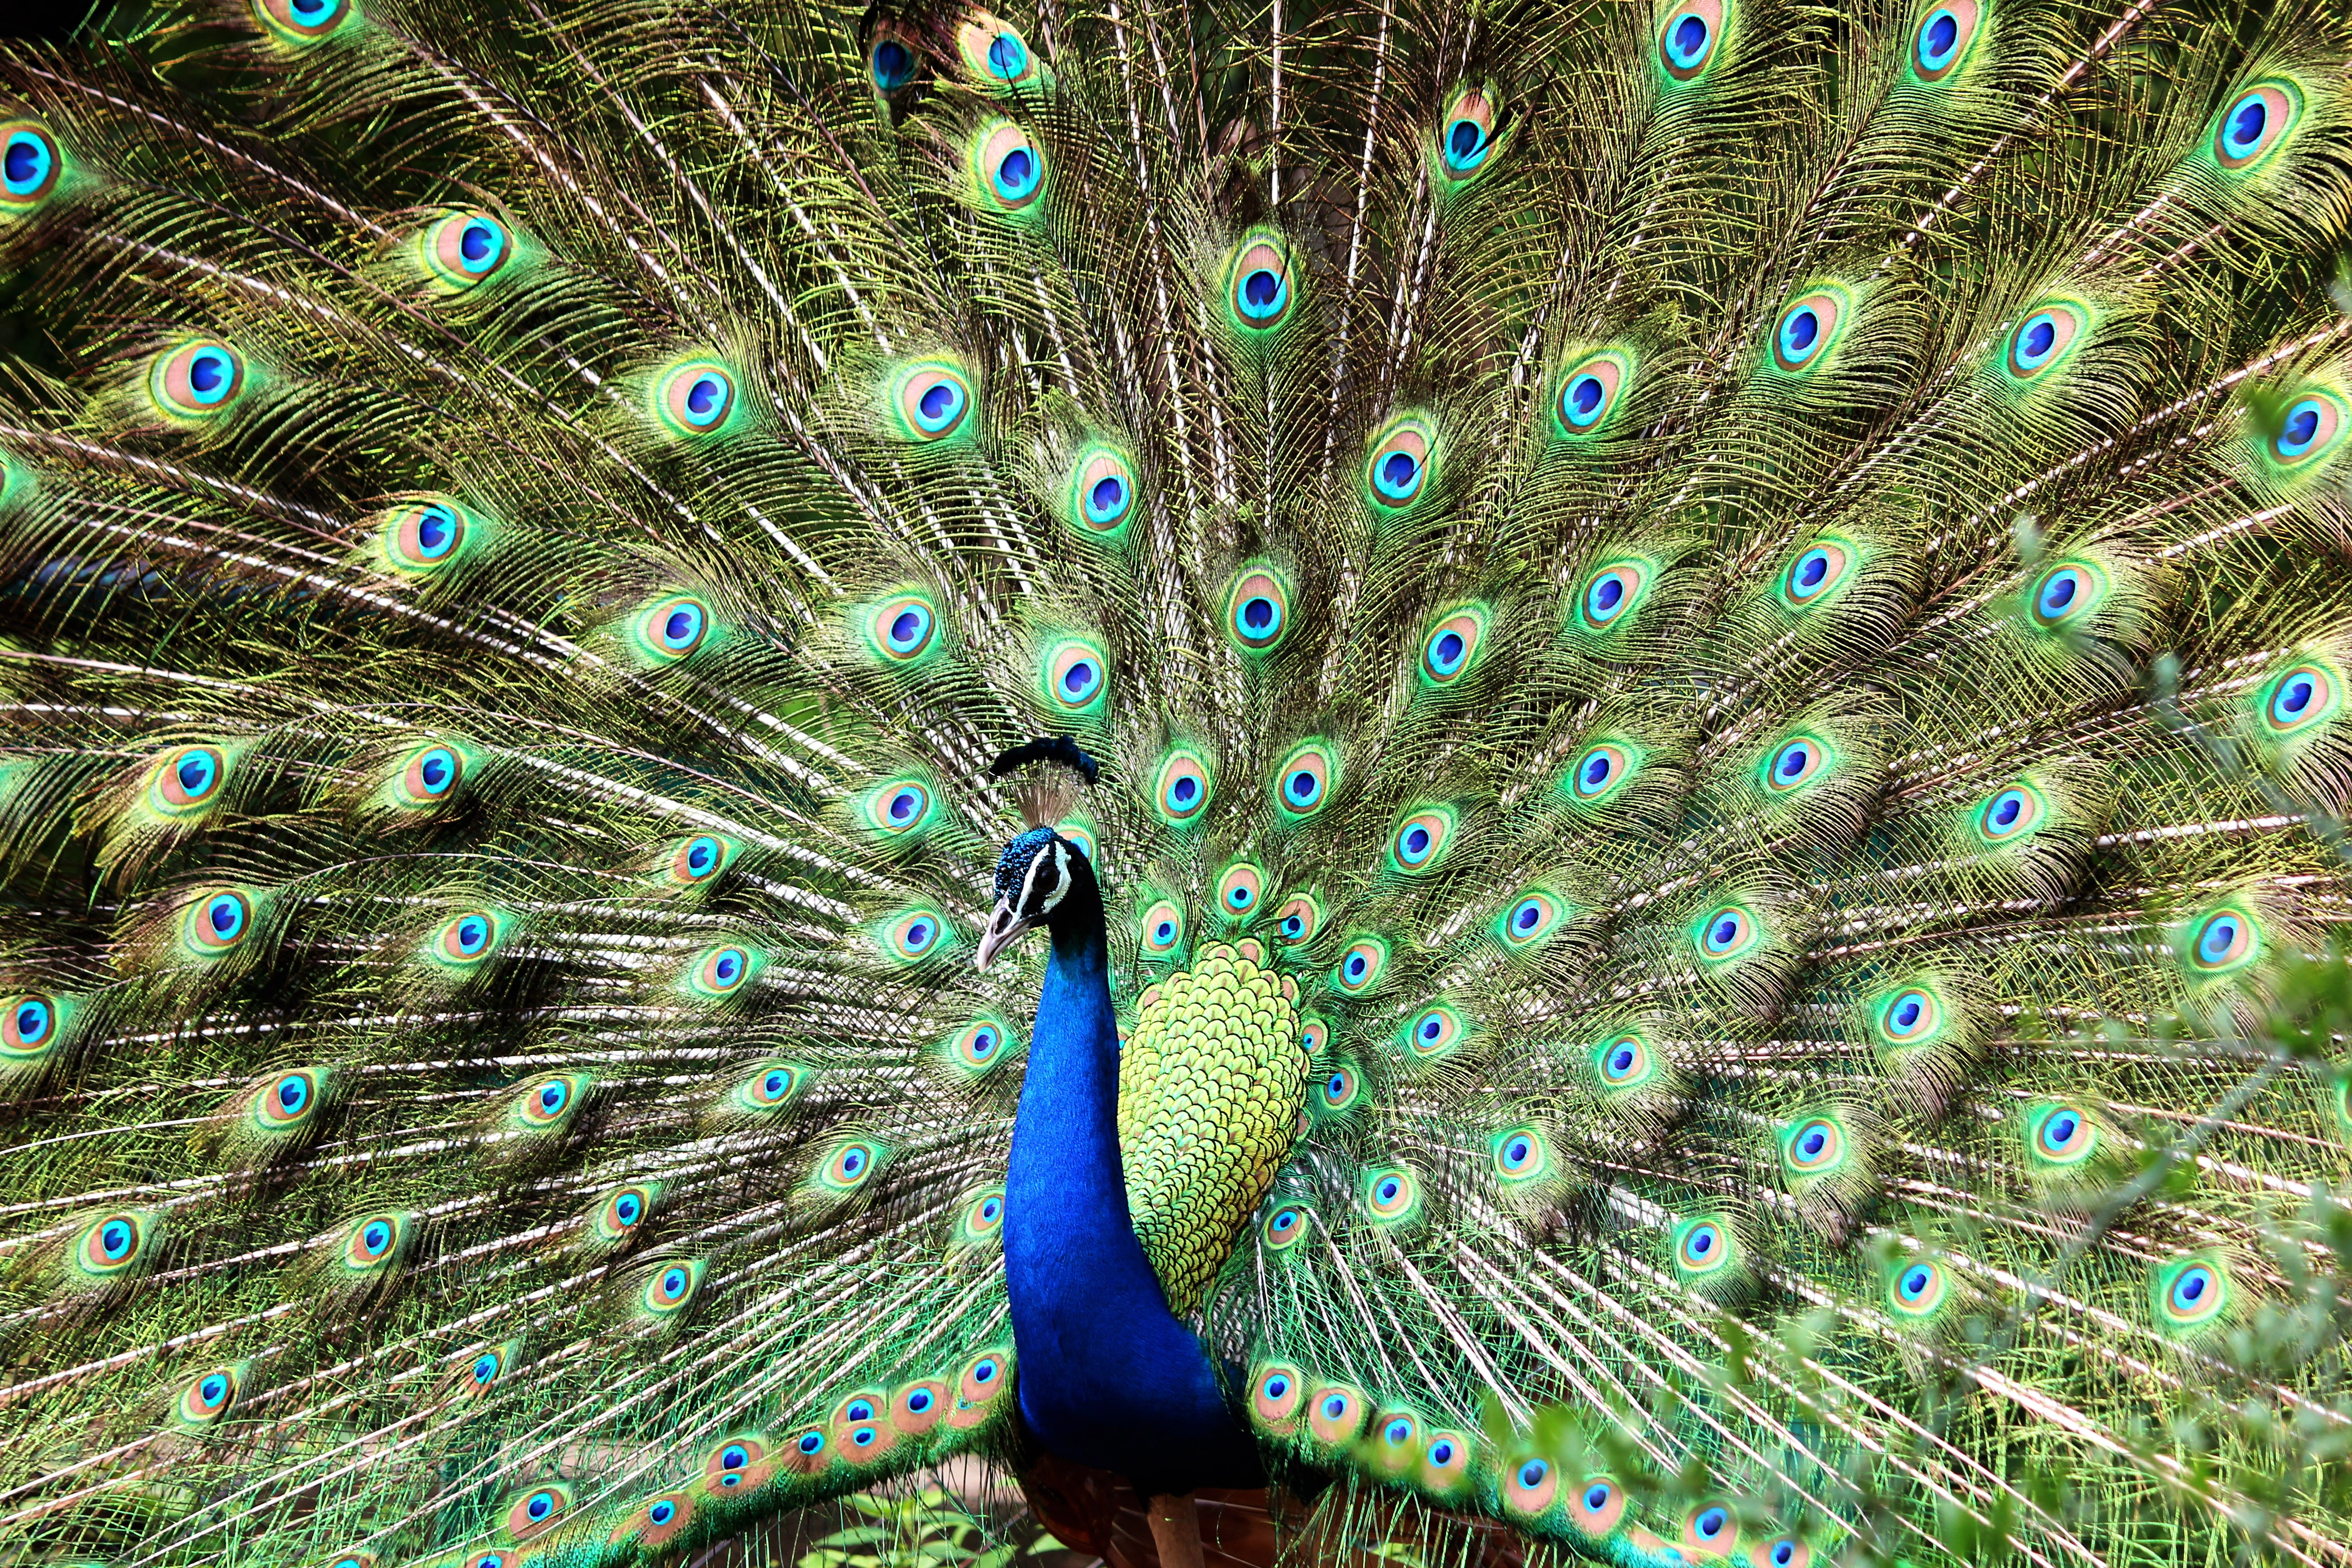 Blue and green peacock photo